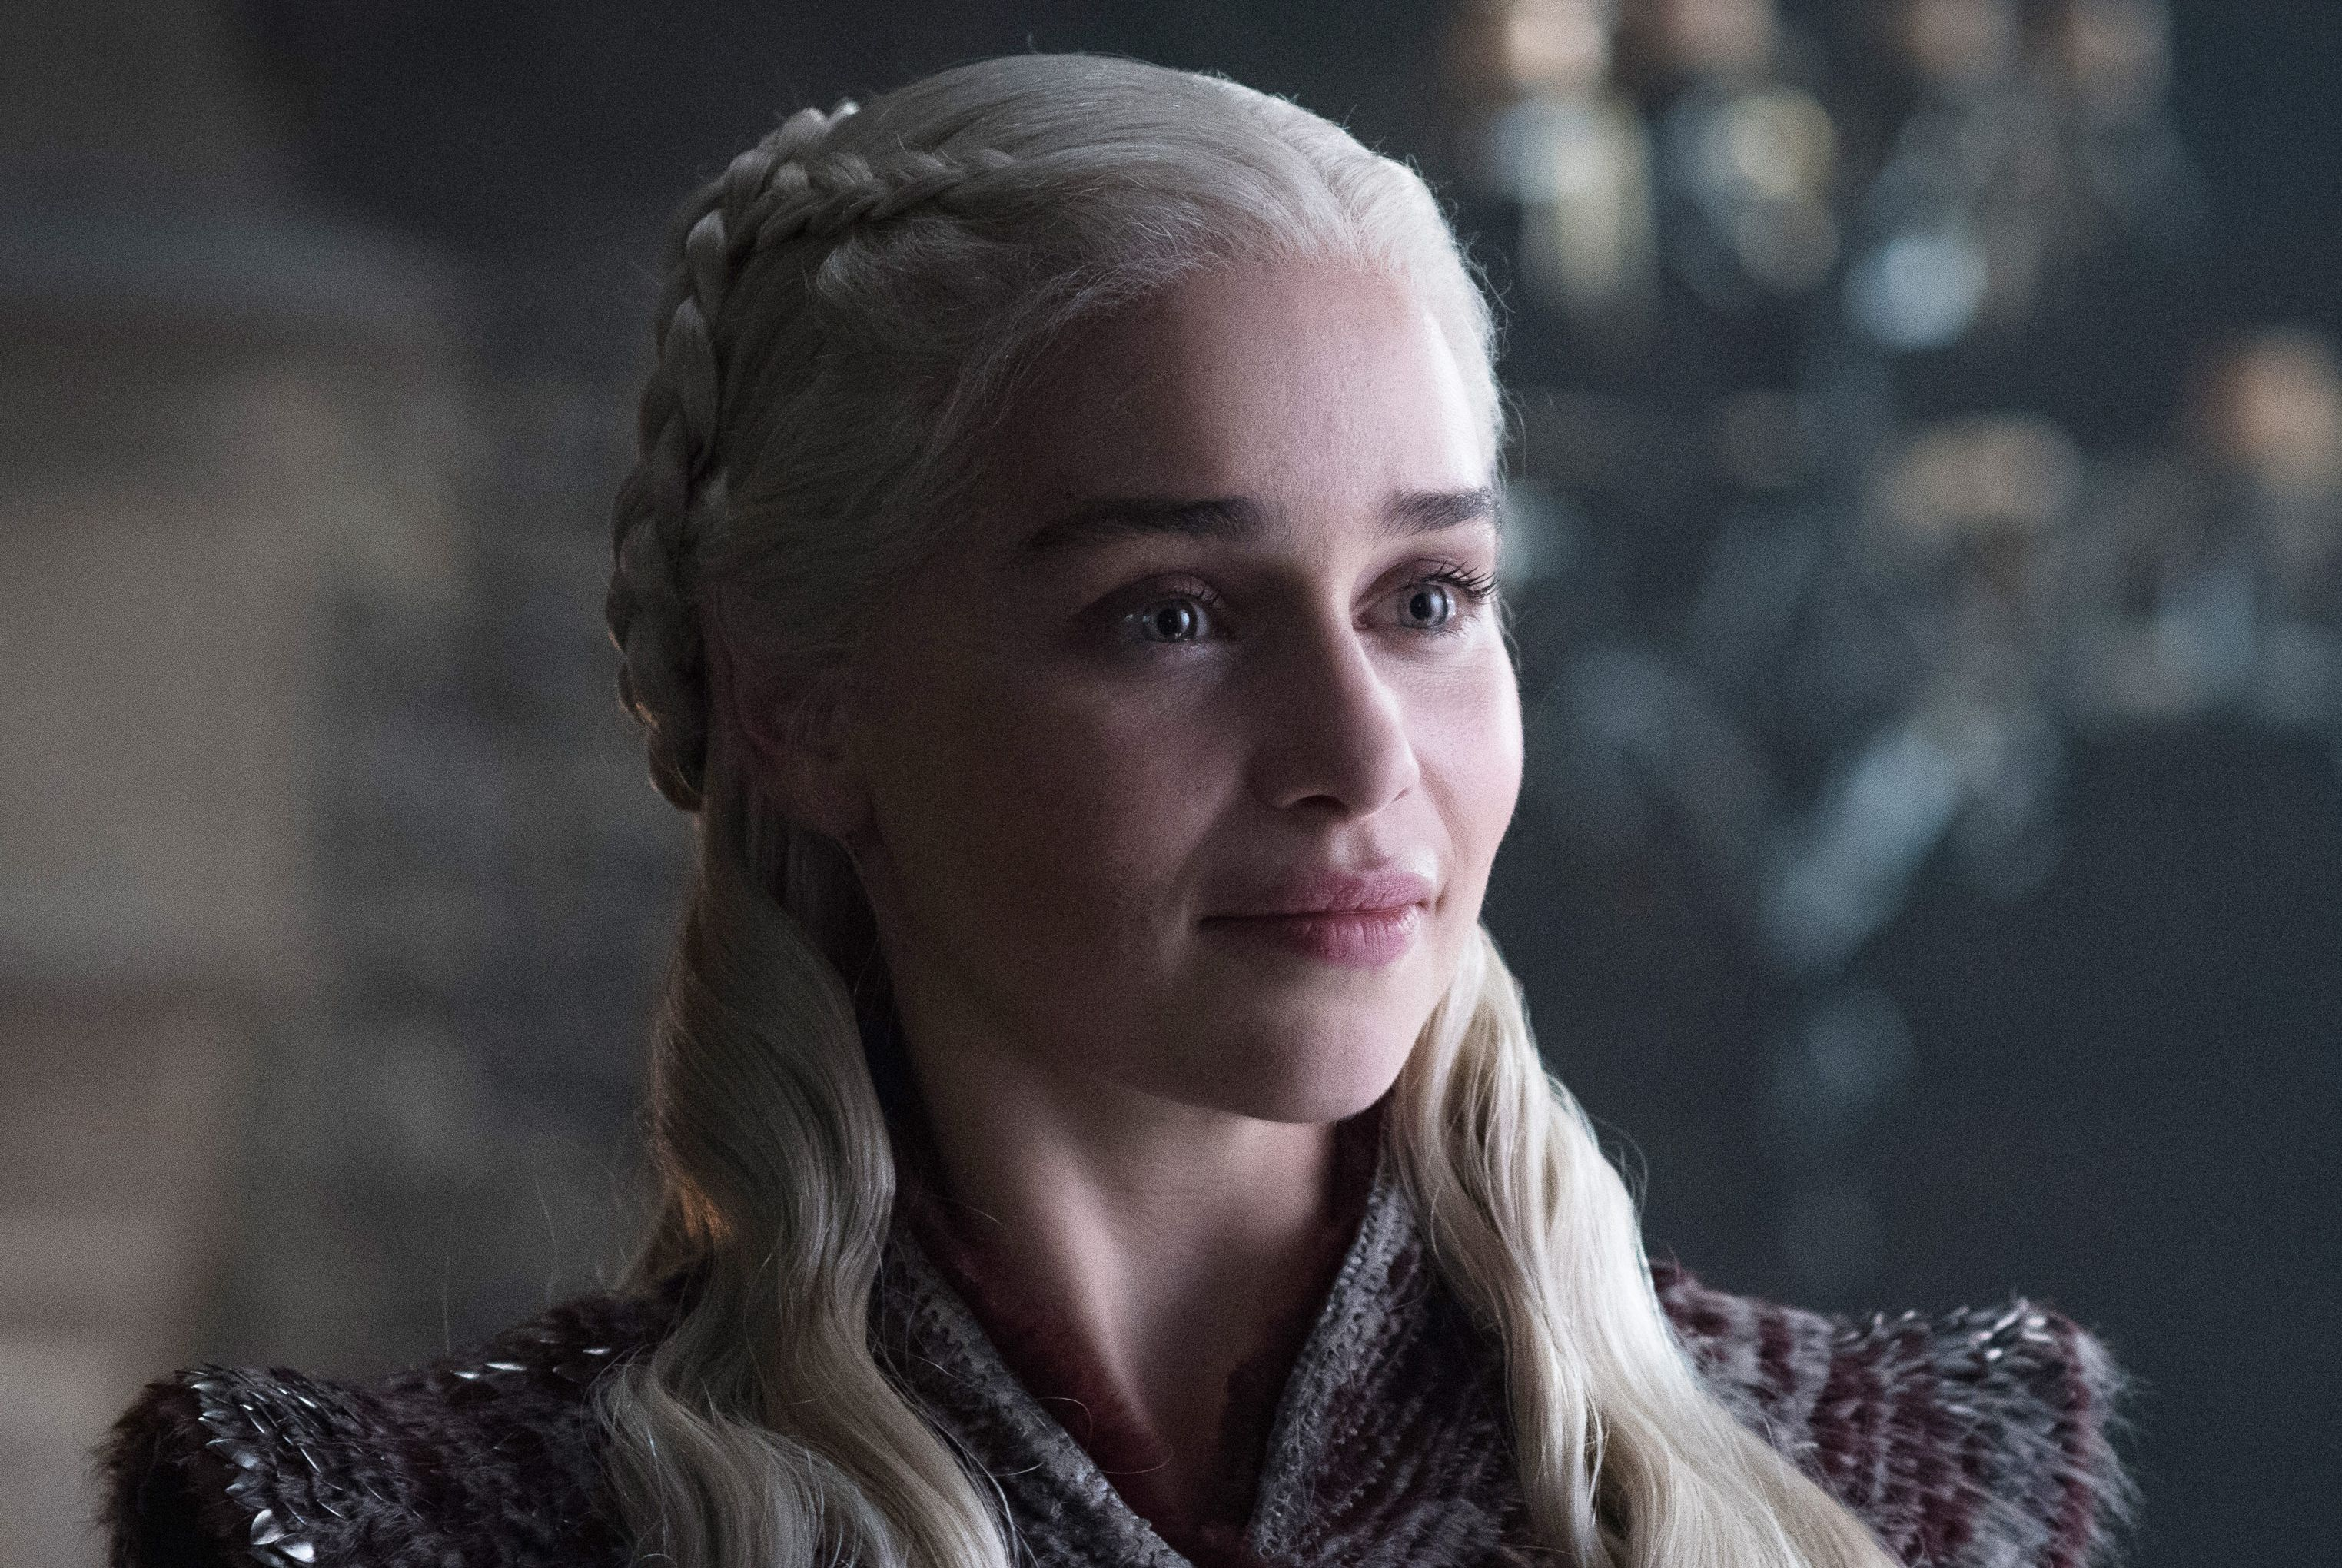 Emilia Clarke pays tribute to late father in emotional Game of Thrones farewell